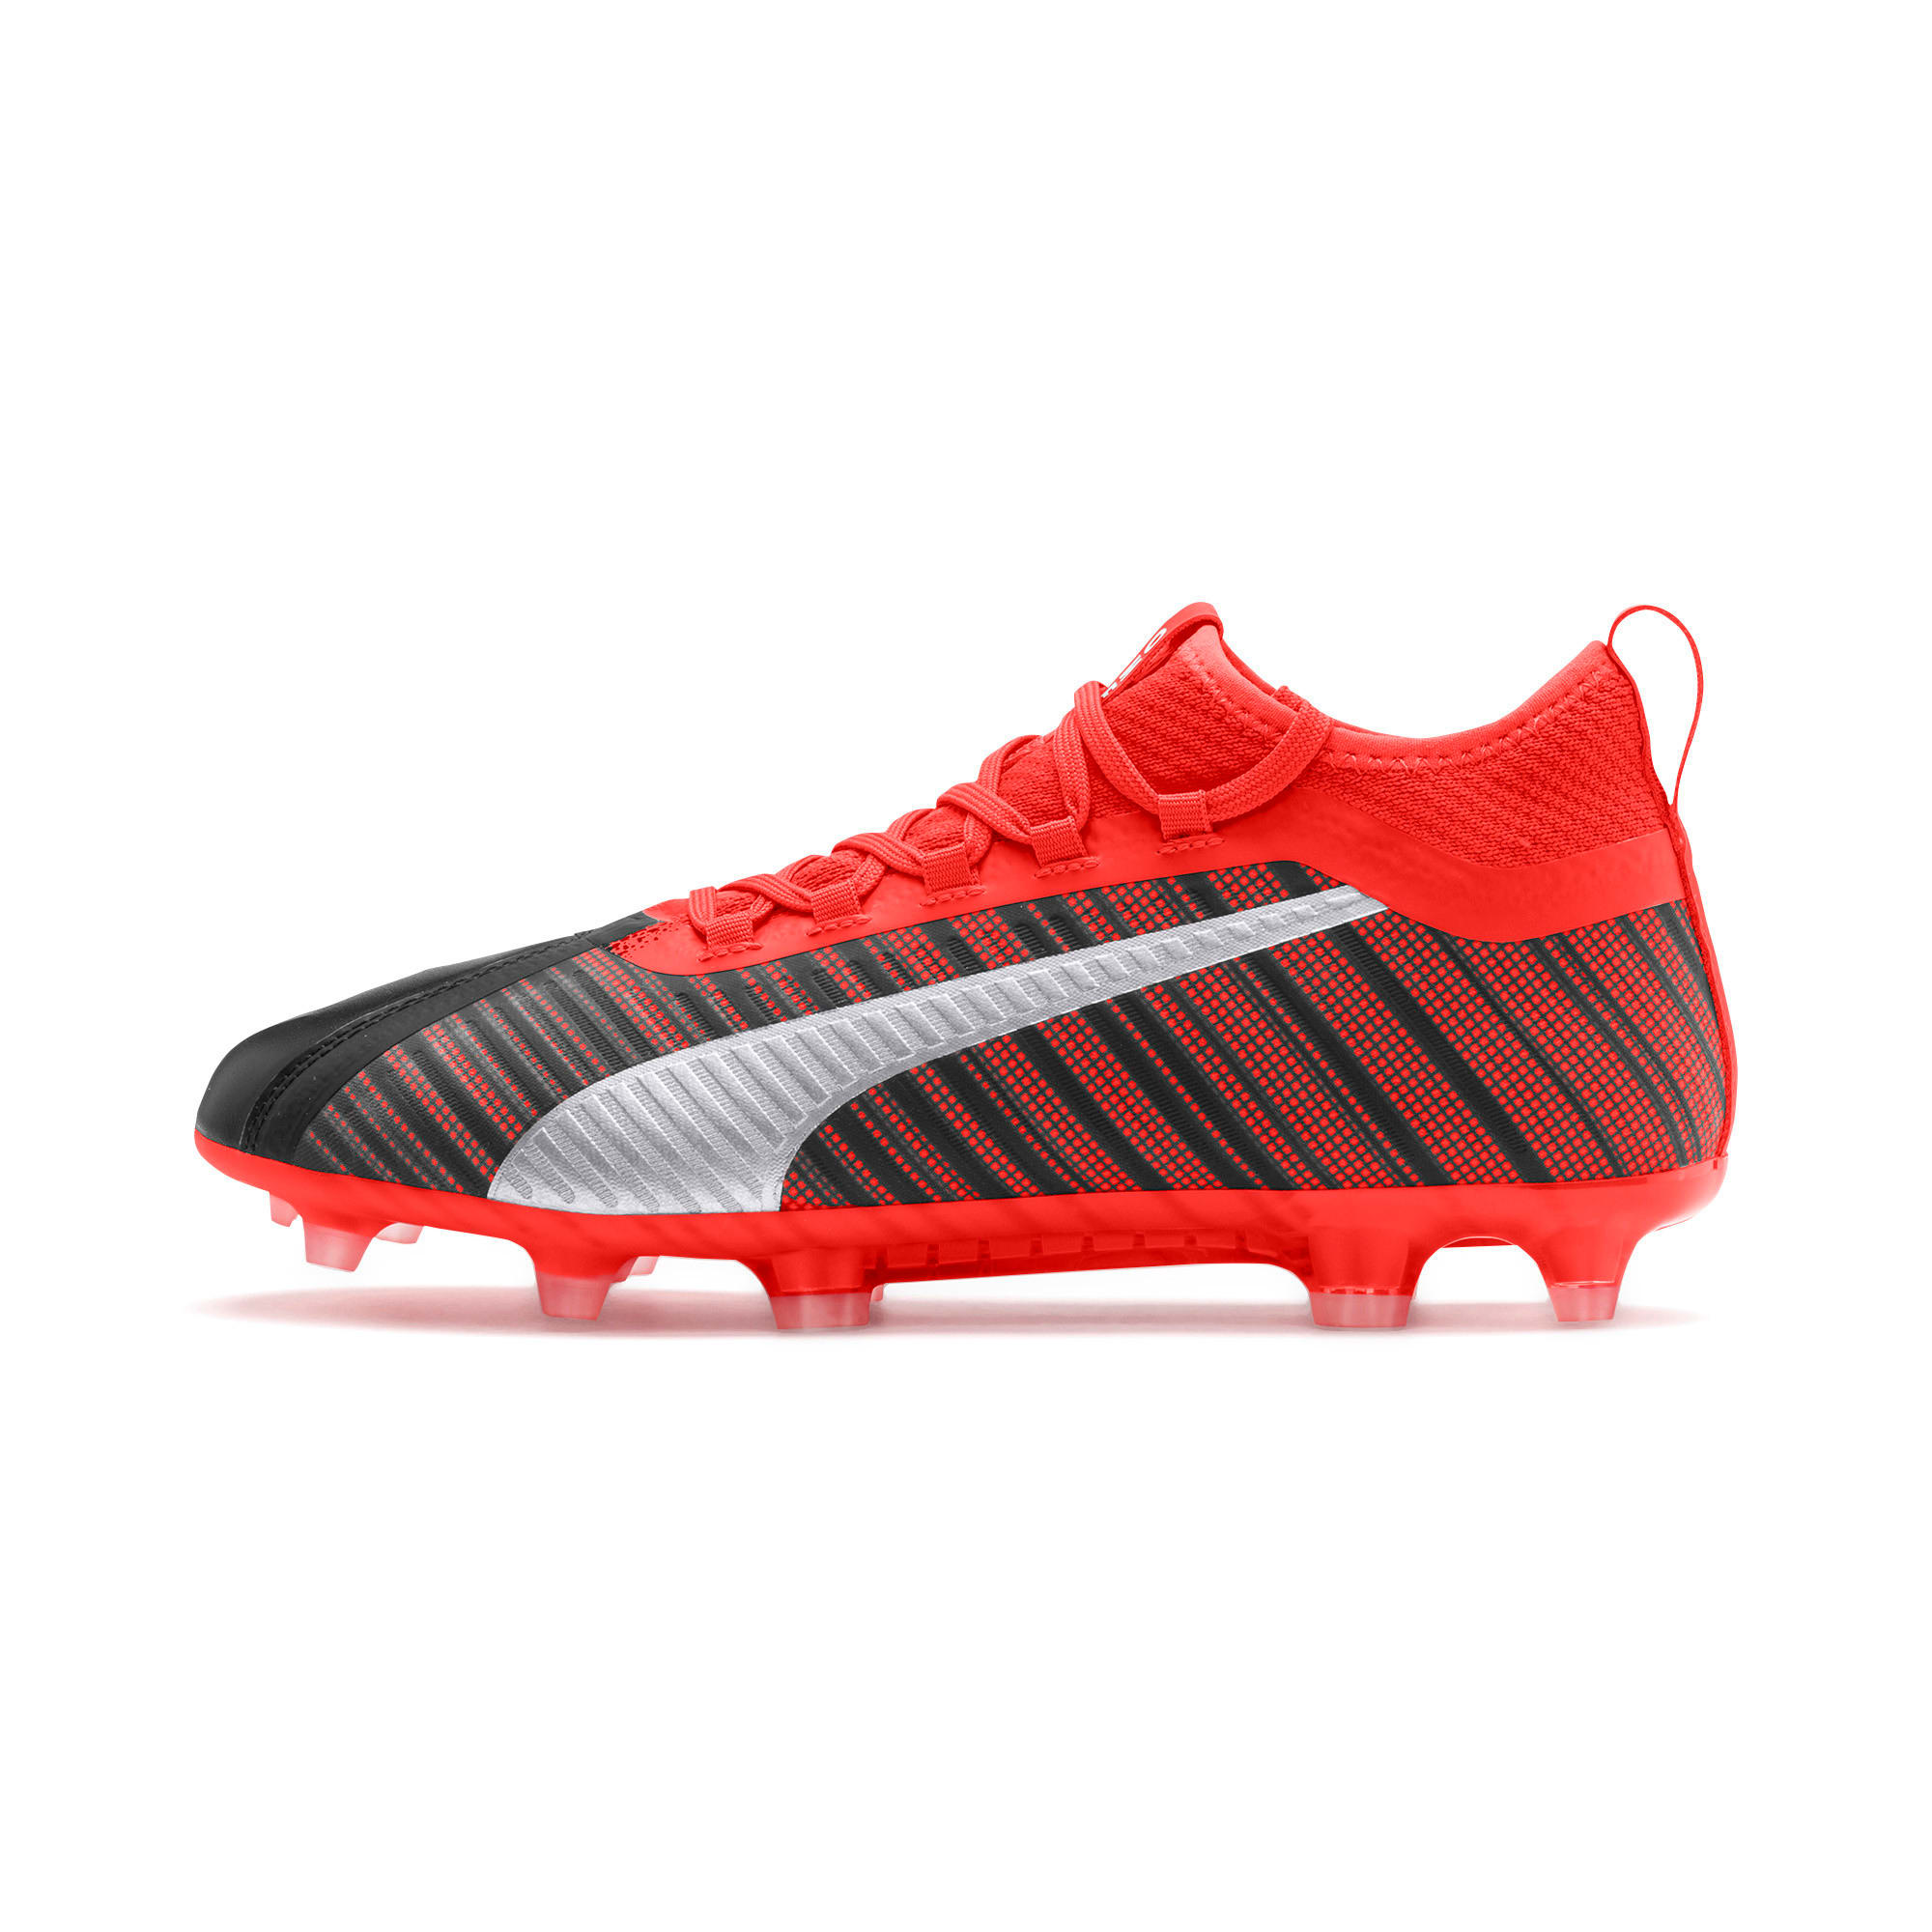 Thumbnail 1 of PUMA ONE 5.2 Men's Football Boots, Black-Nrgy Red-Aged Silver, medium